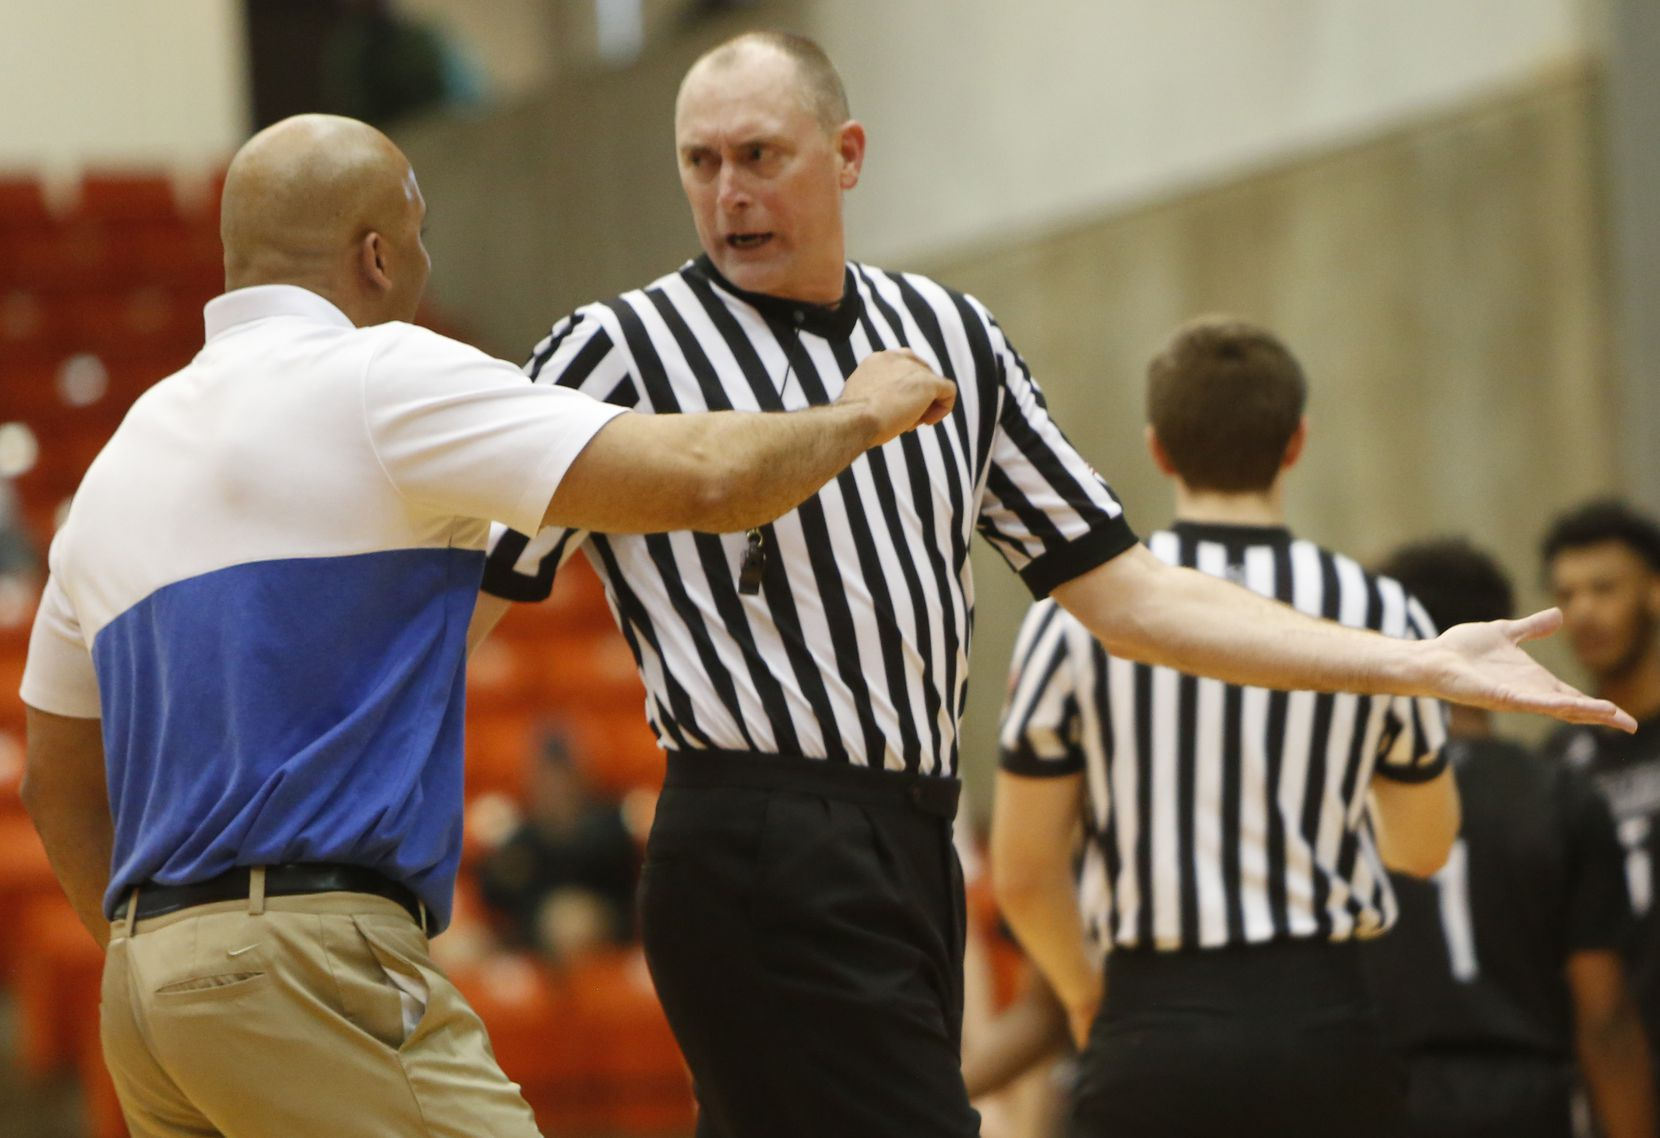 Duncanville head coach David Peavy converses with a game official during a second half timeout of their game against Odessa Permian. The two teams played in the Class 6A Region 1 championship boys basketball playoff game at Wilkerson-Greines Activity Center in Fort Worth on March 7, 2020.